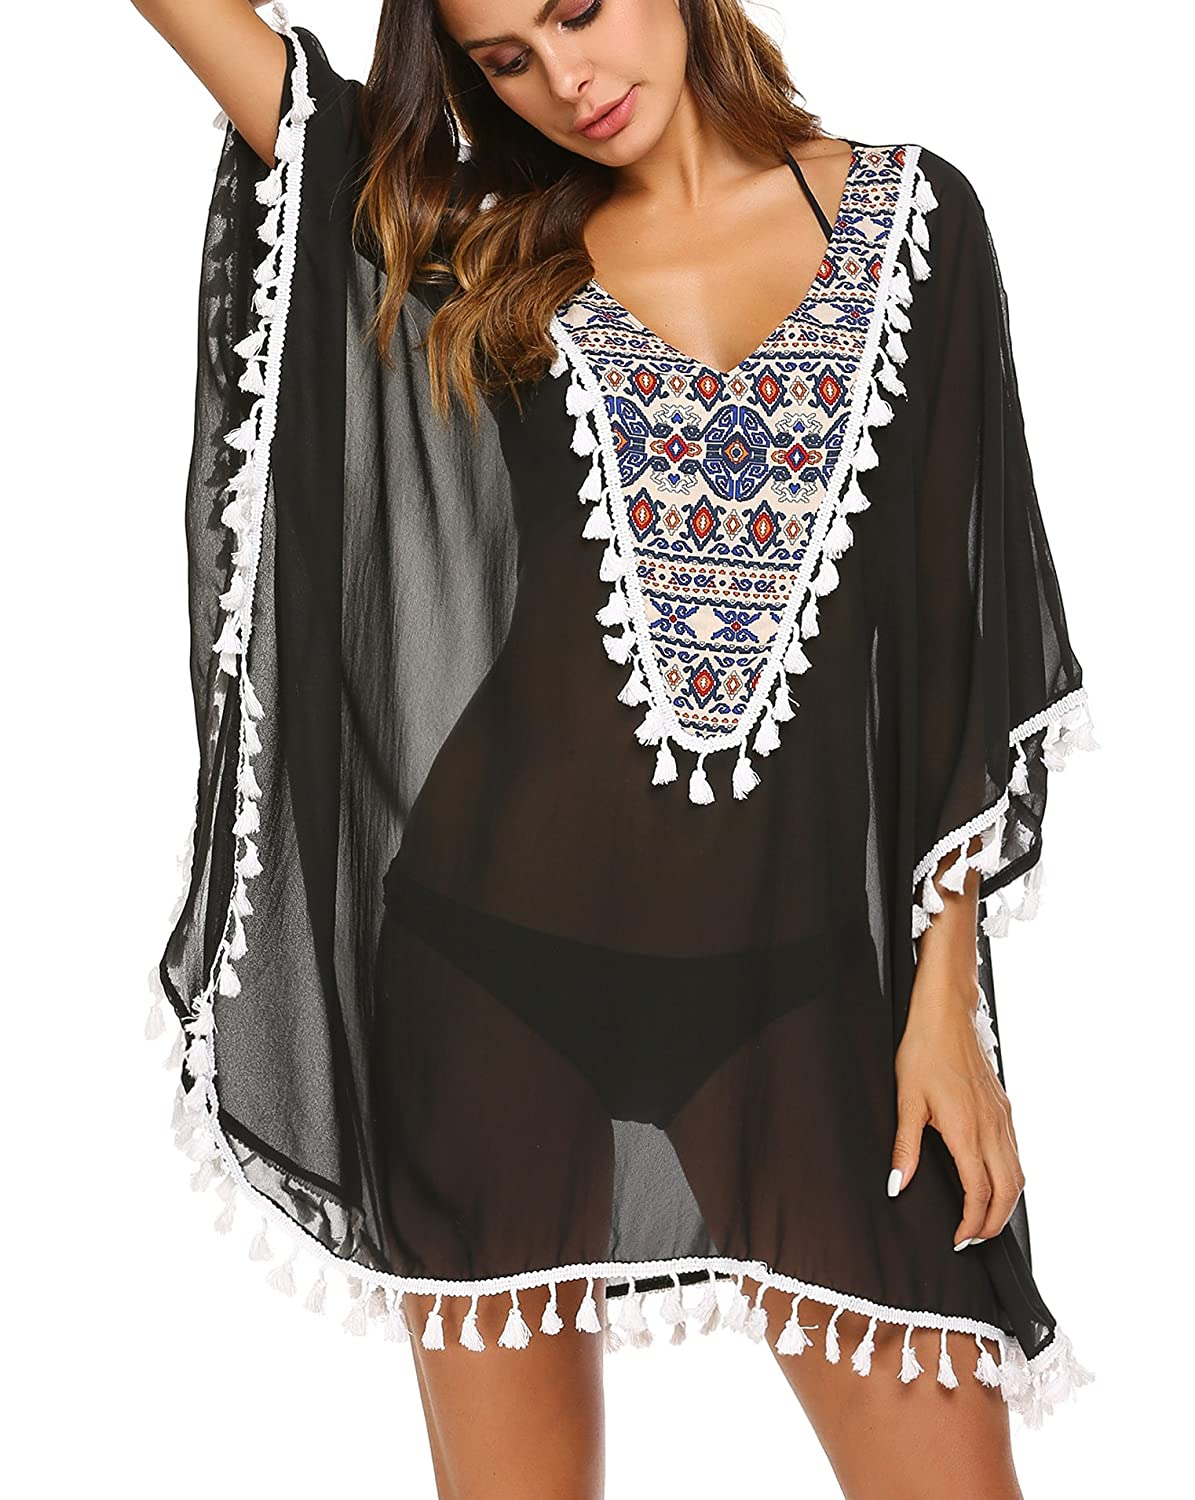 89a3a14608 Online Cheap wholesale Teewanna Women Chiffon Tassel Swimsuit Bikini  Stylish Beach Cover up S-XXL Cover-Ups Suppliers